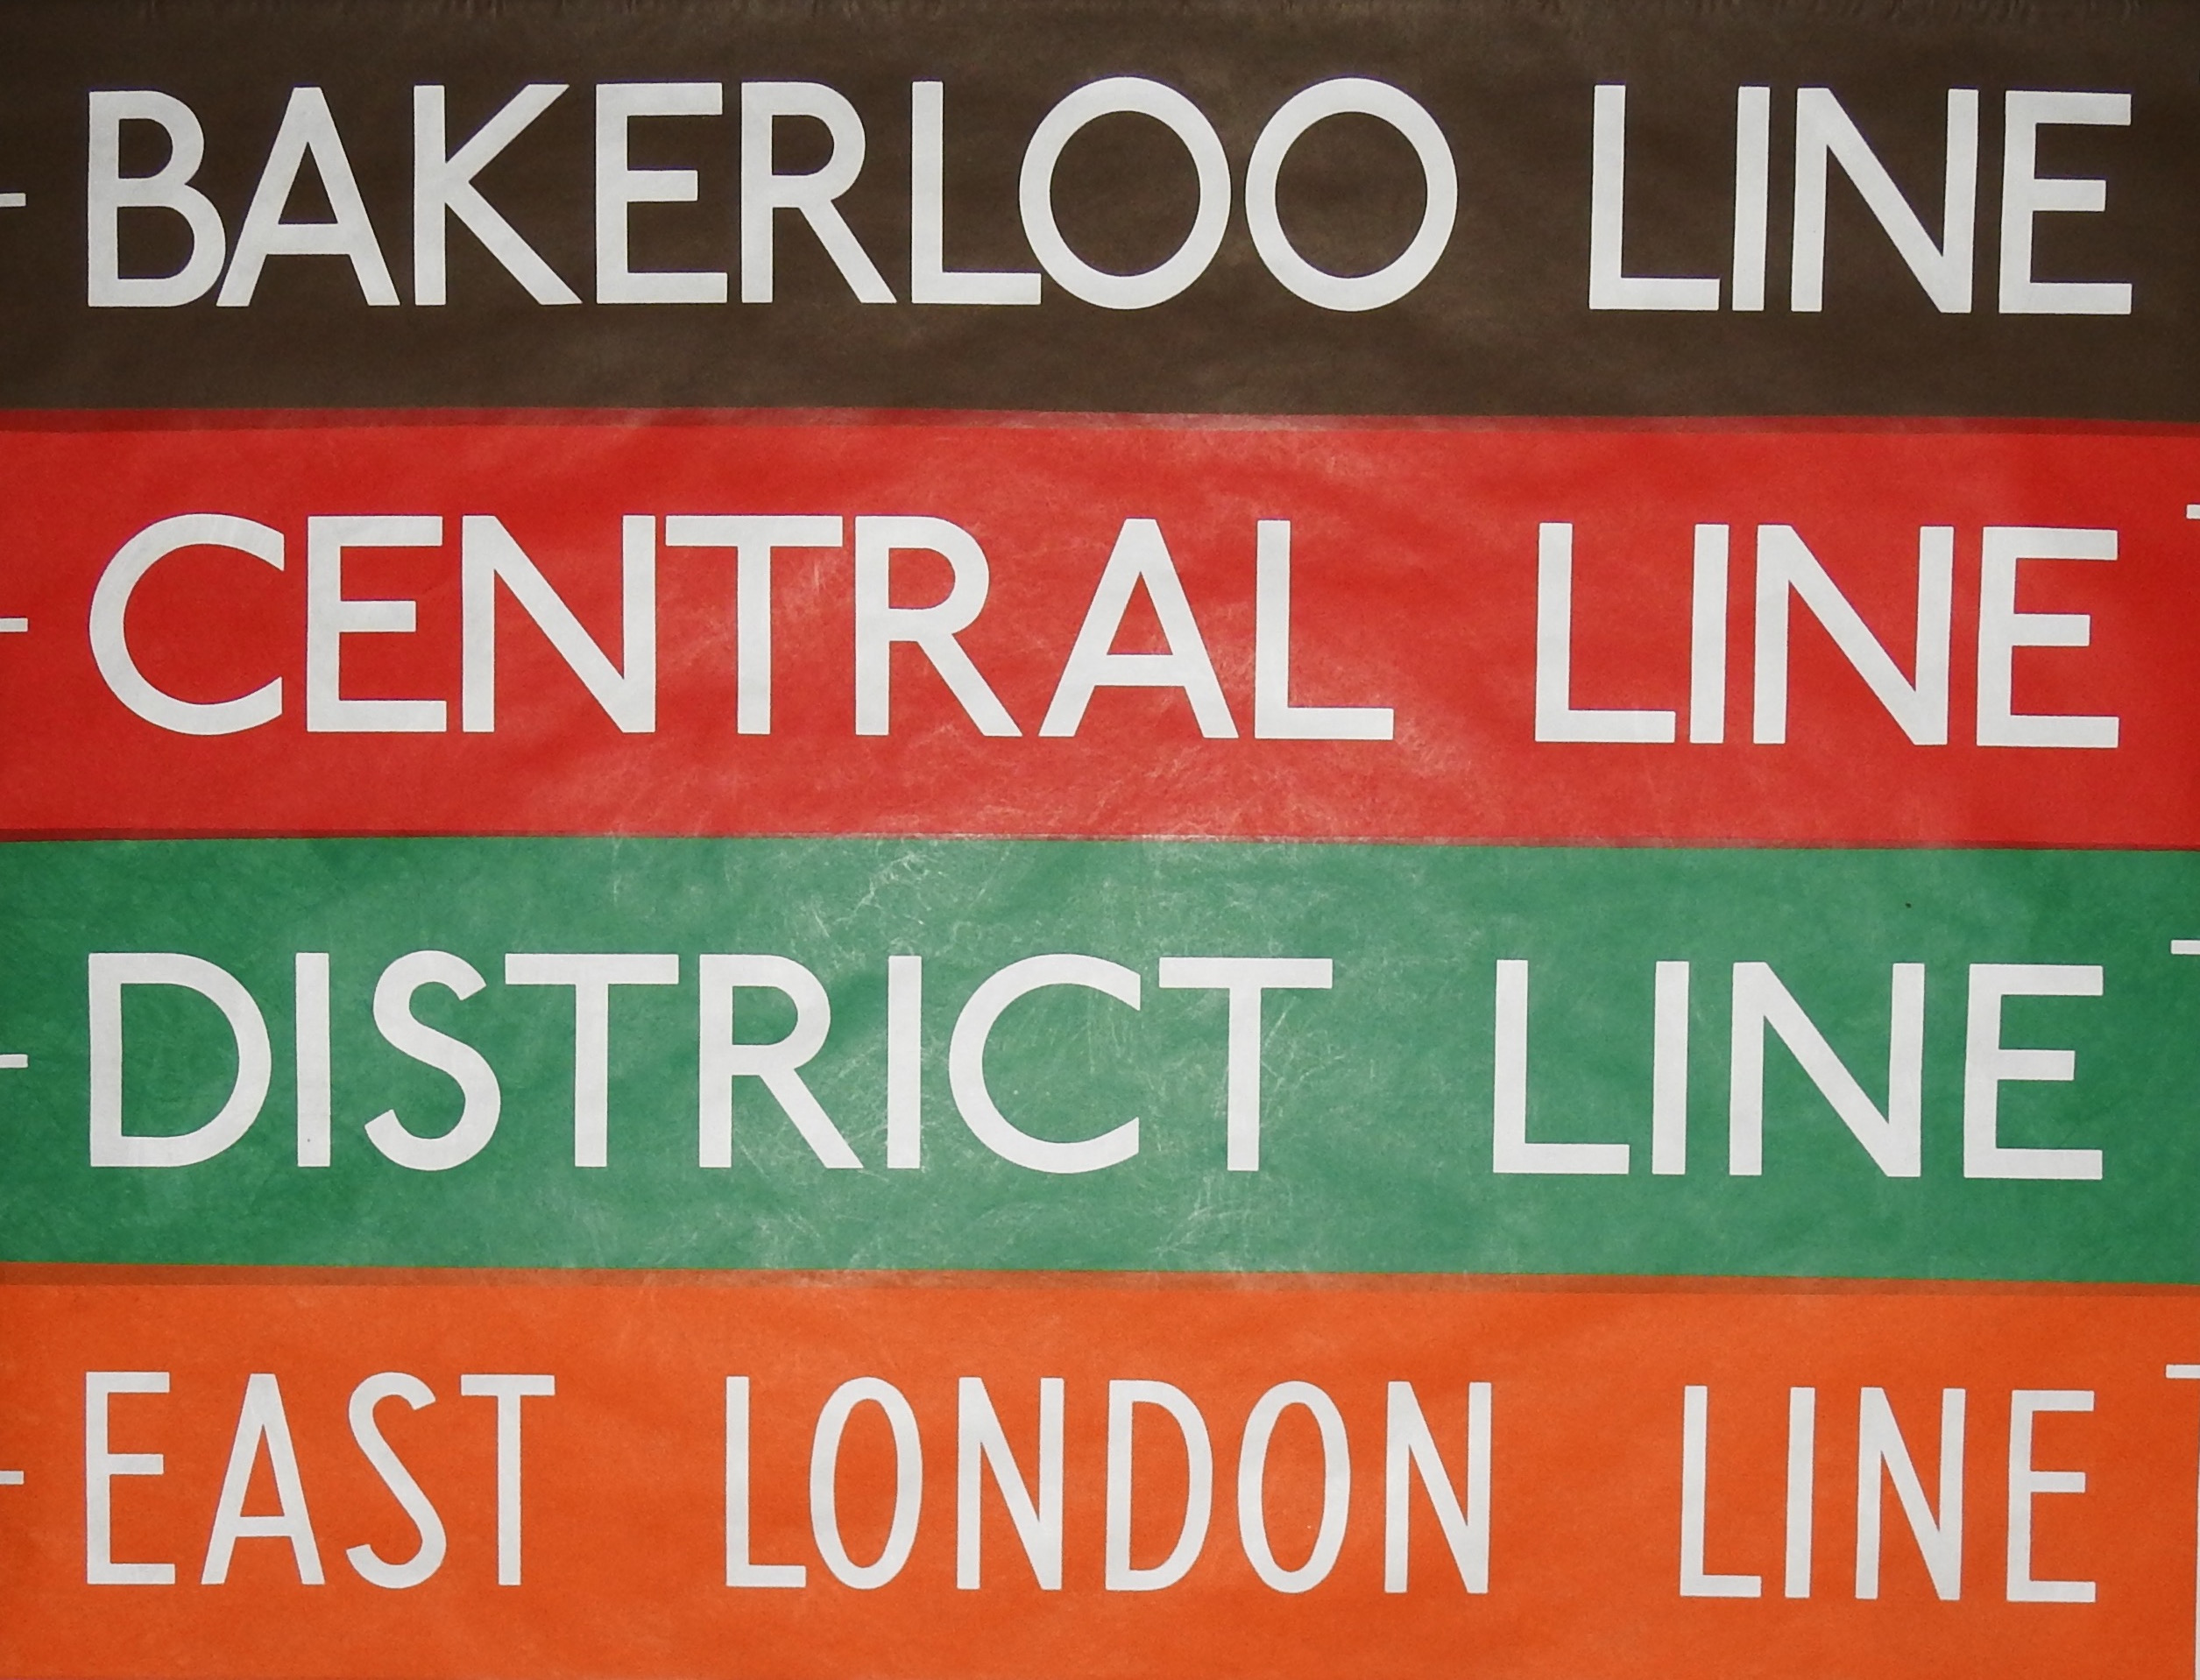 Bakerloo, Central, District, East London